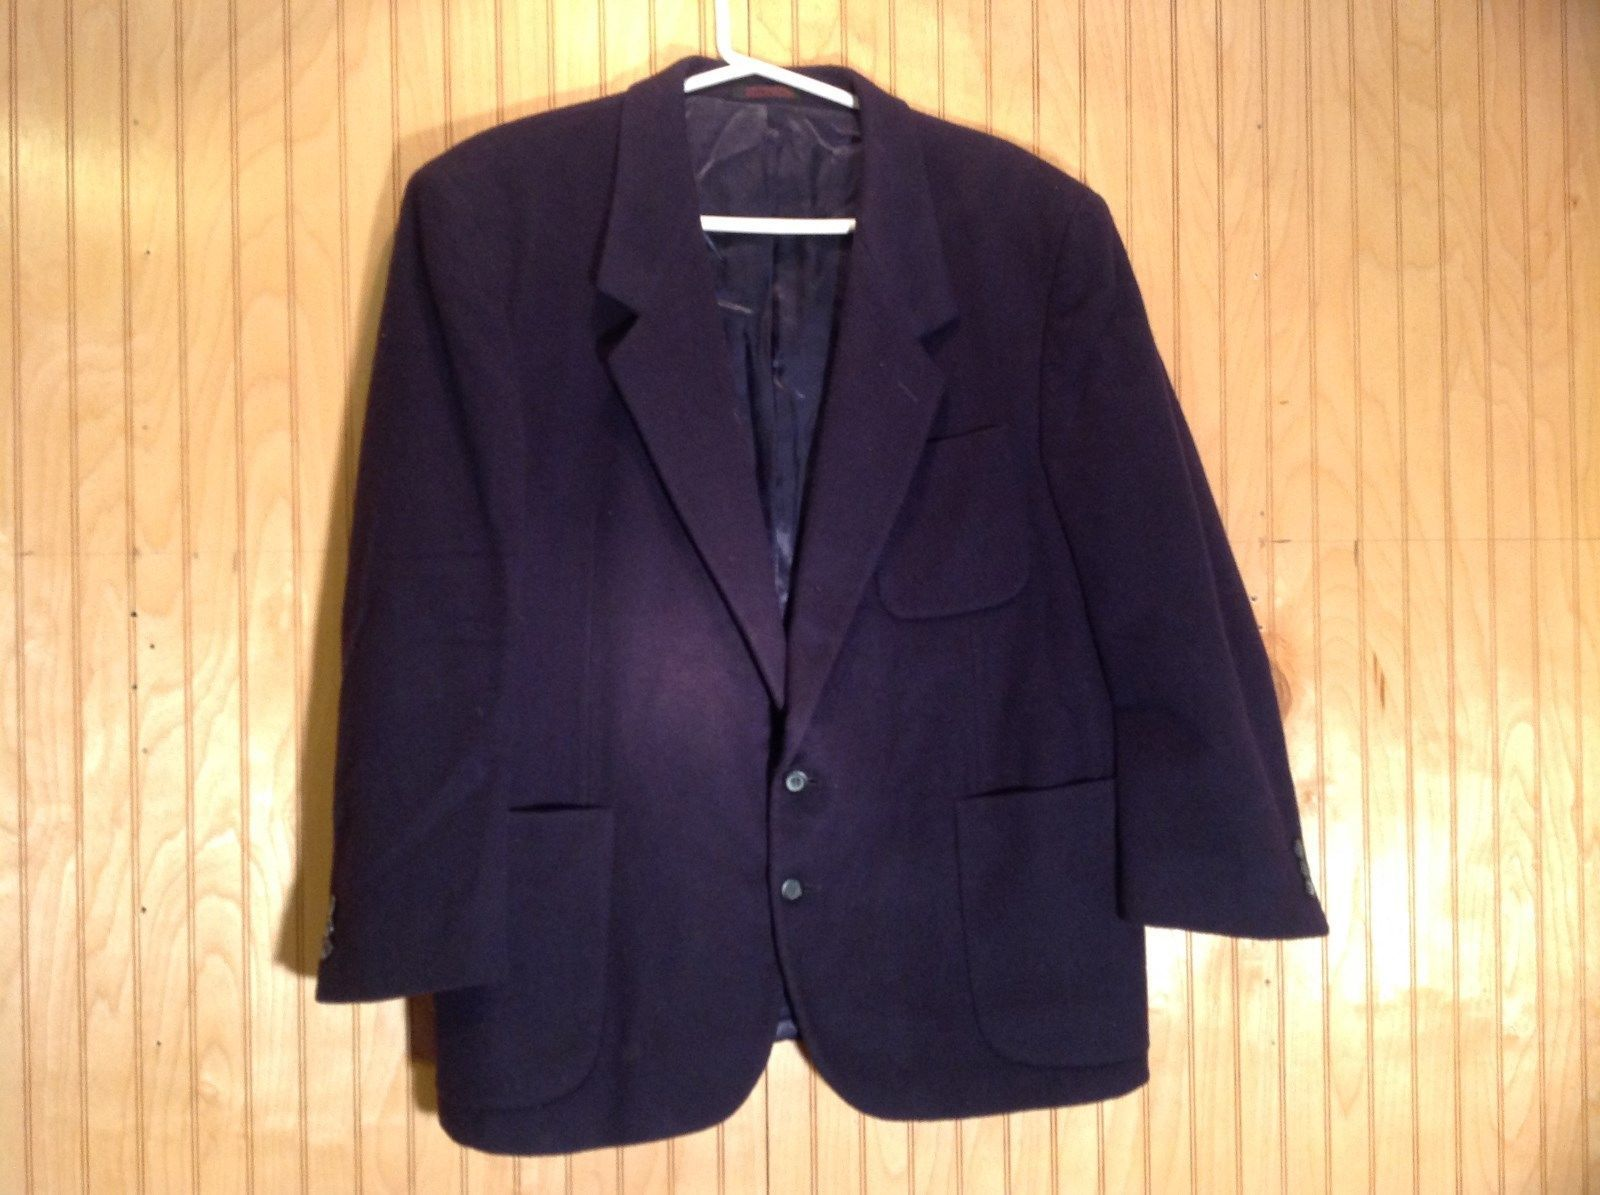 Aldo DiFirenze Black Sports Coat Blazer Dark Purple Satin Inside Size 44